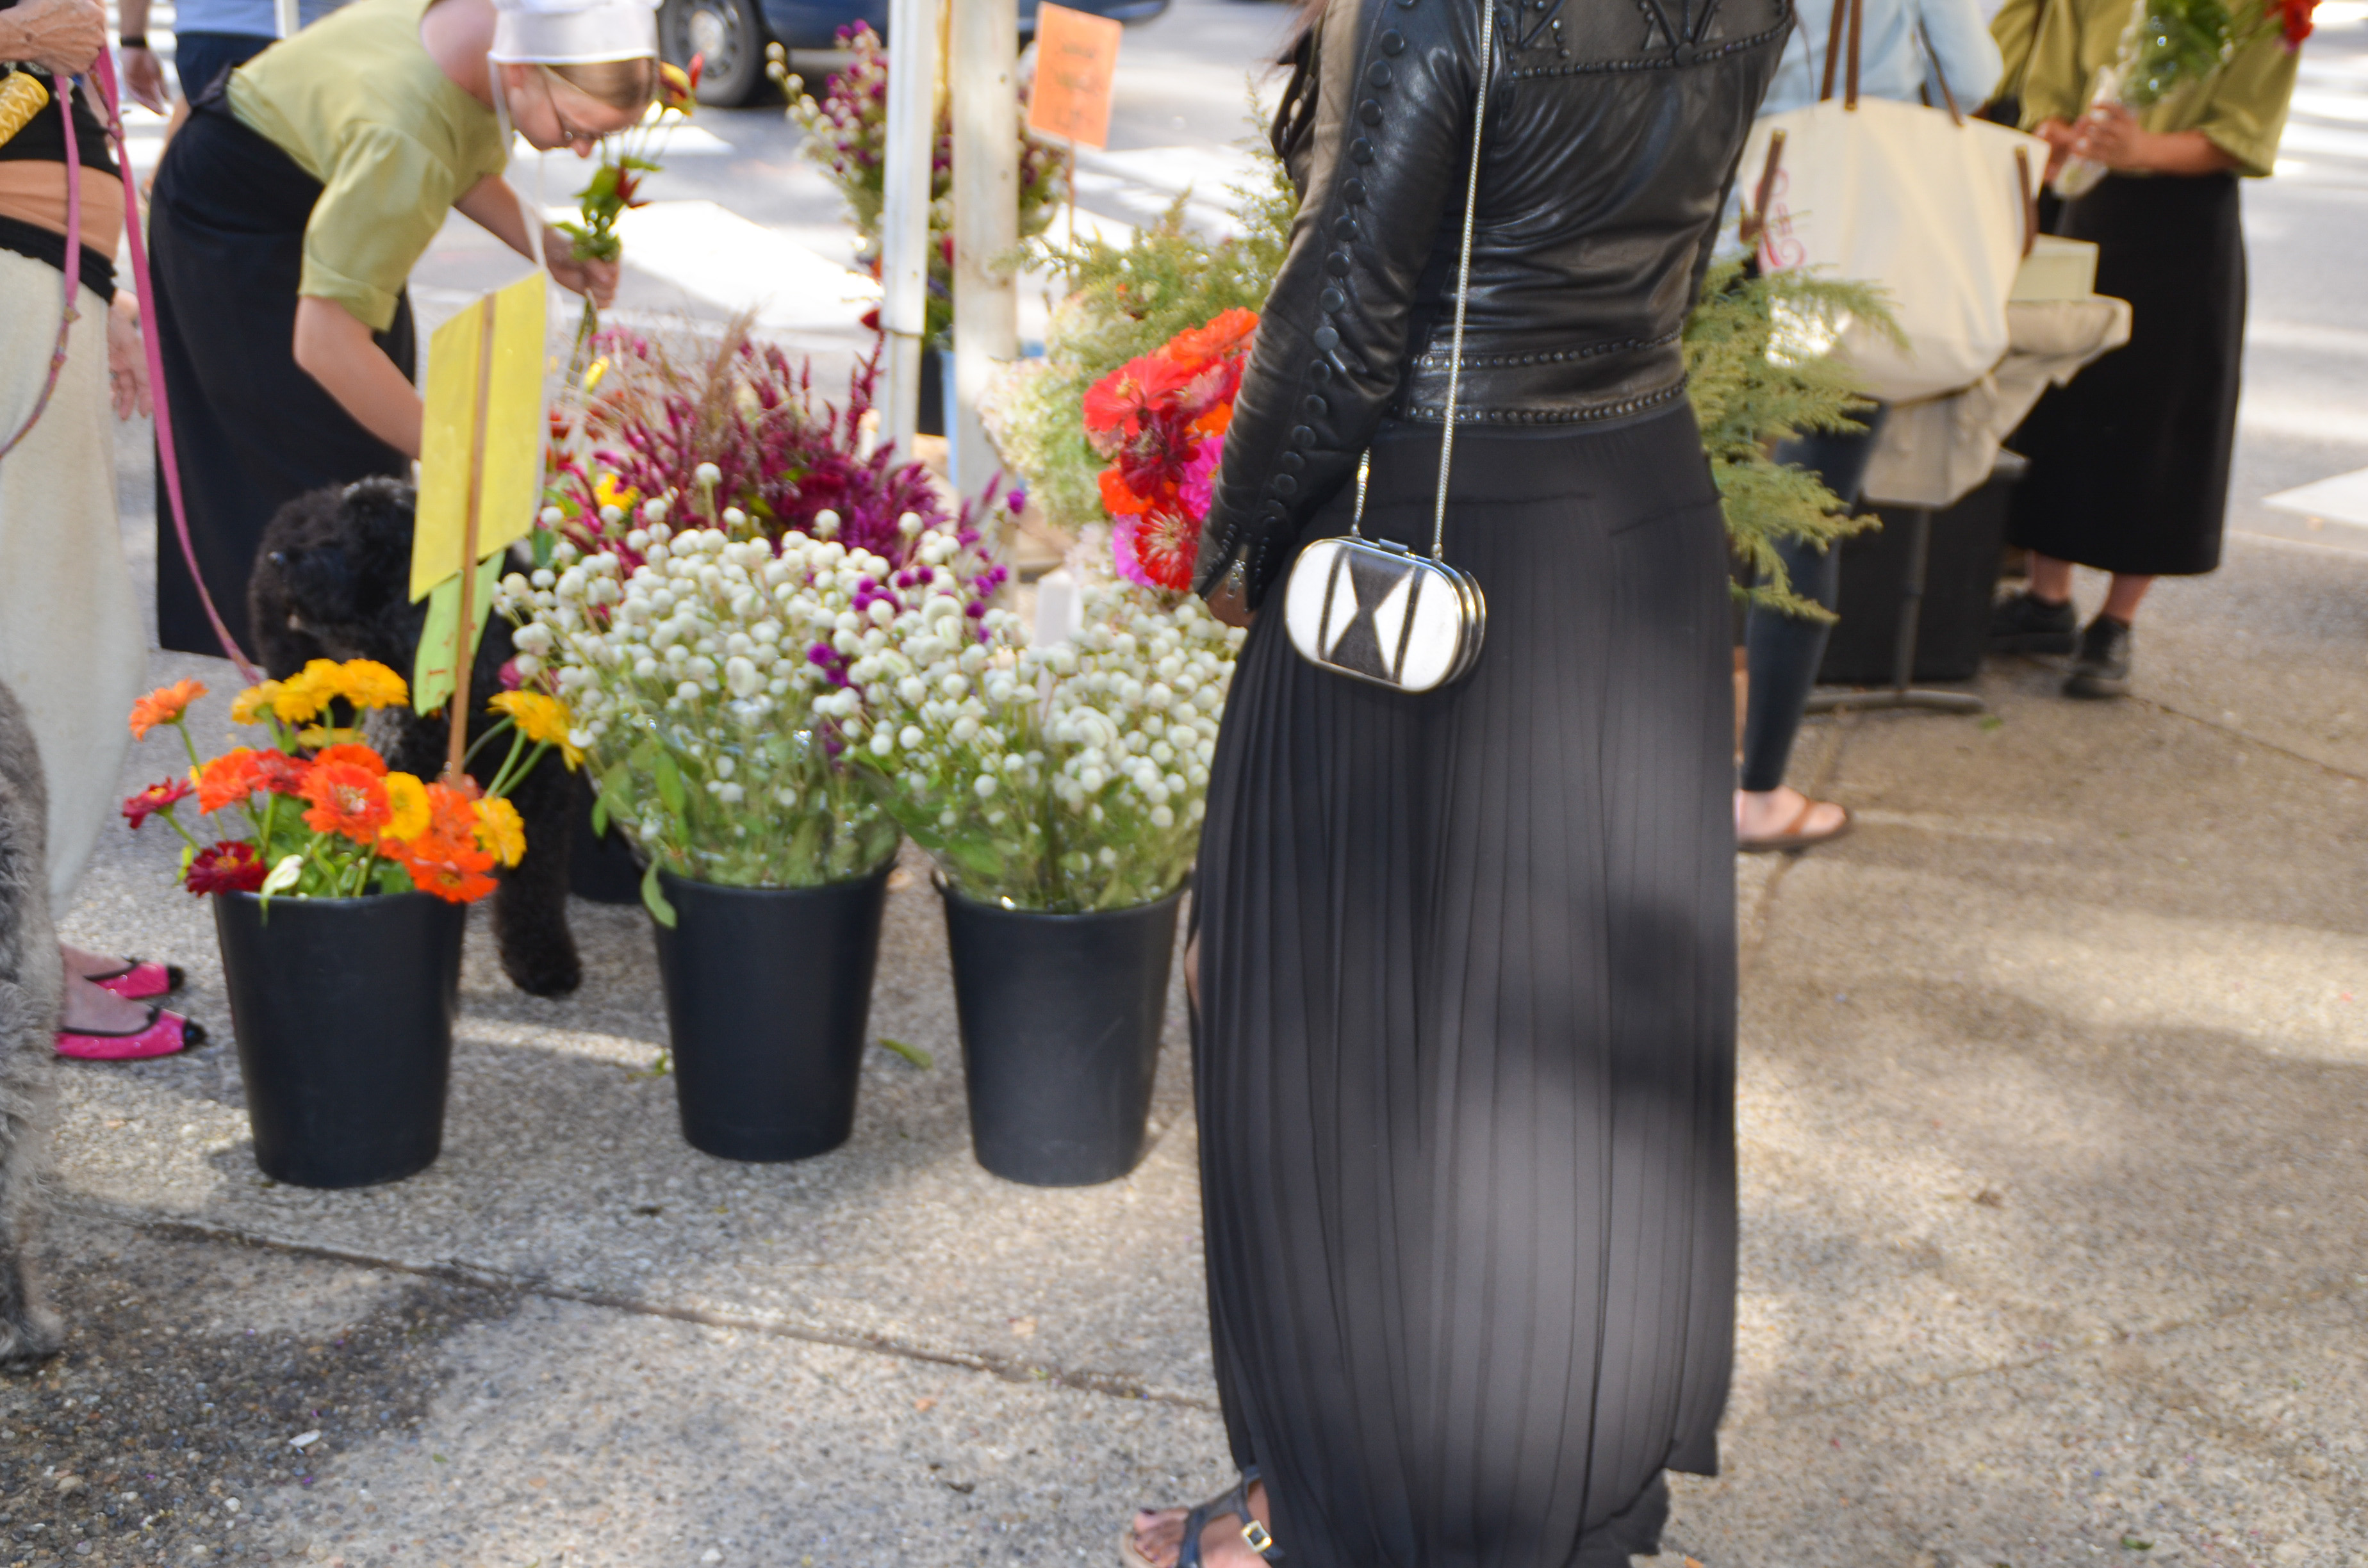 Amish Farmer's Market - Rittenhouse Square | StyleChile | Life, Styled-3